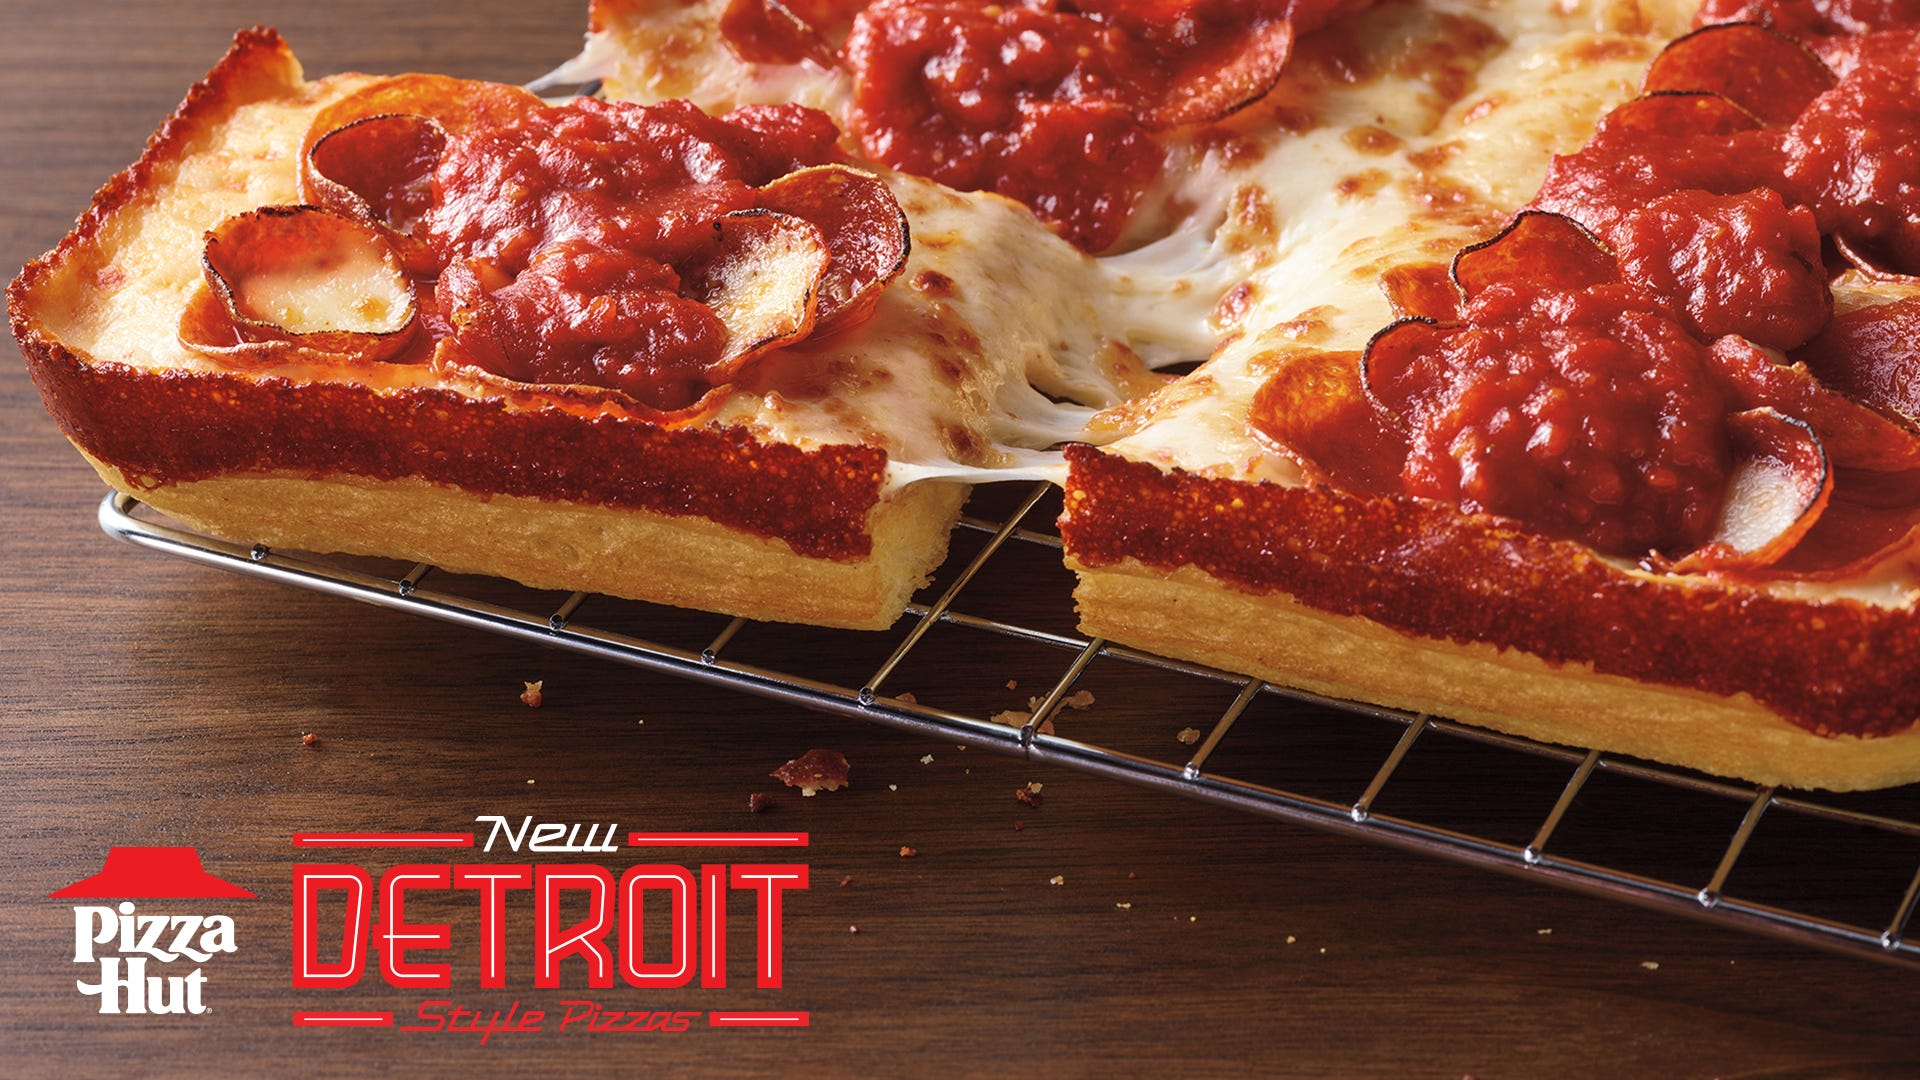 Pizza Hut releases new Detroit-Style Pizza nationwide in four varieties including Double Pepperoni